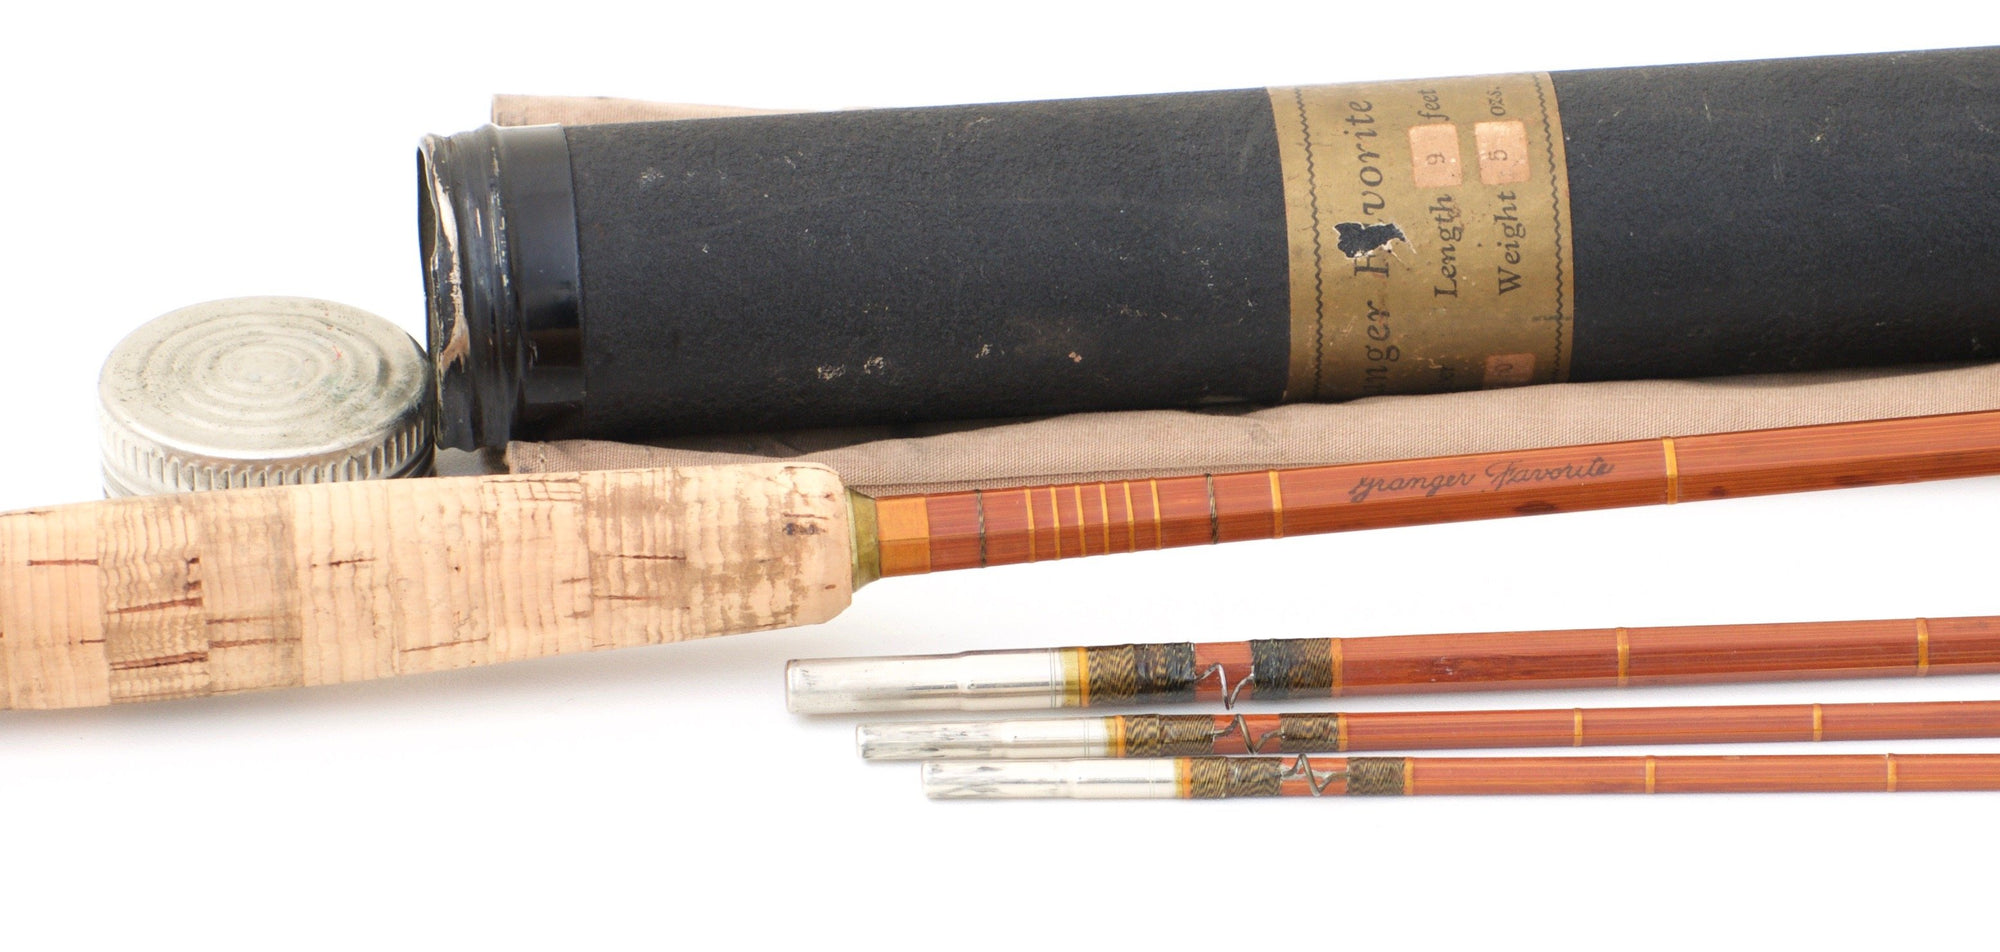 Goodwin Granger Favorite Model 9050 Bamboo Rod